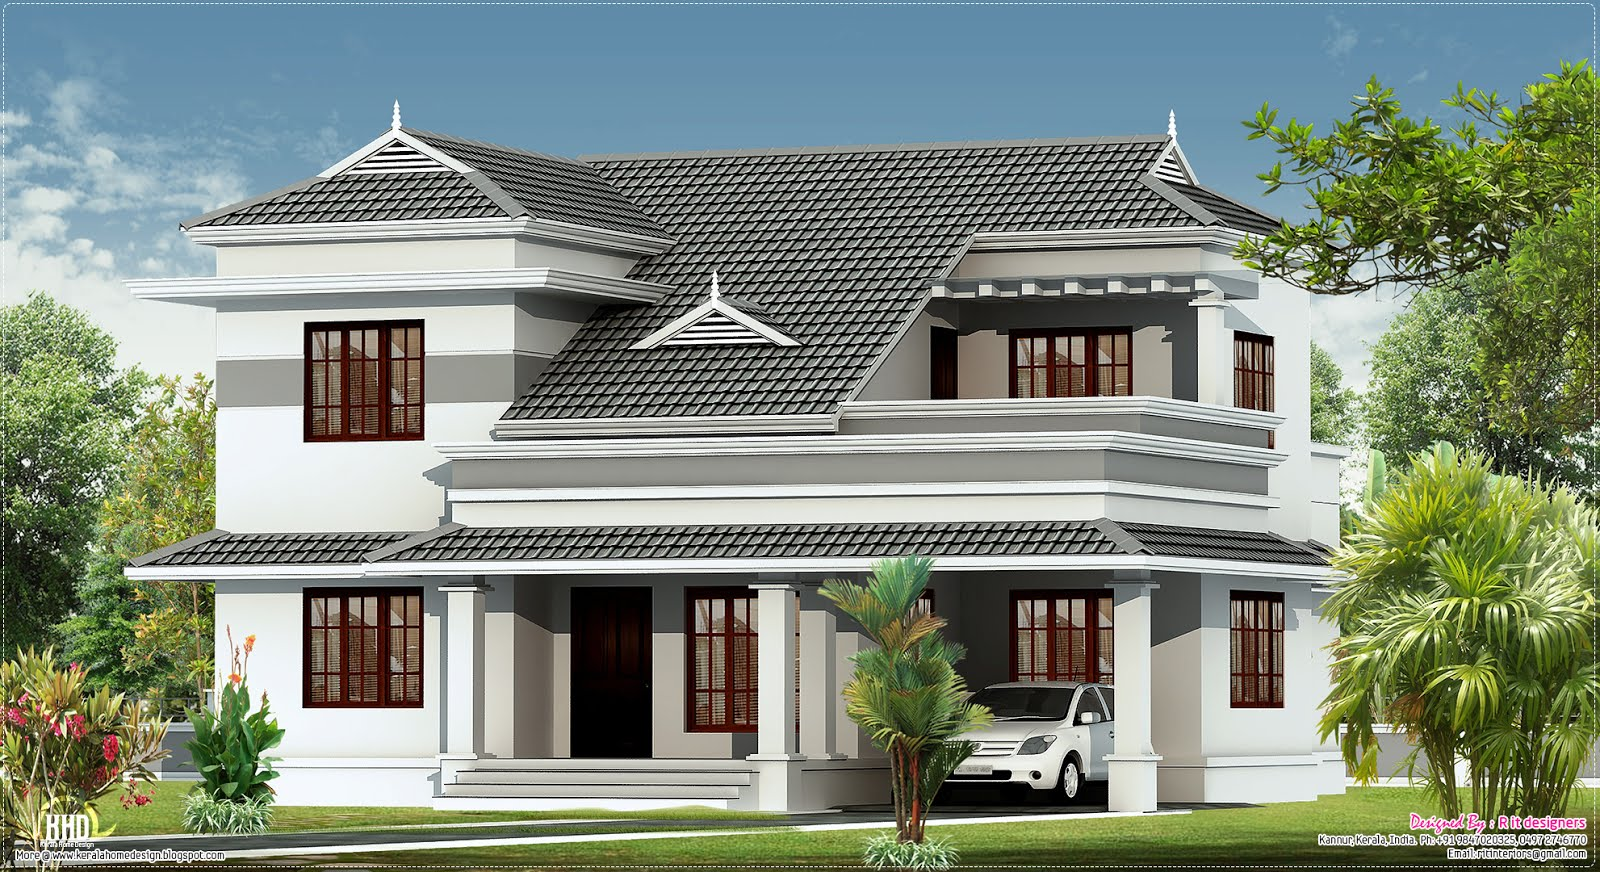 New villa design in 2250 kerala home design and for Villa plans in kerala